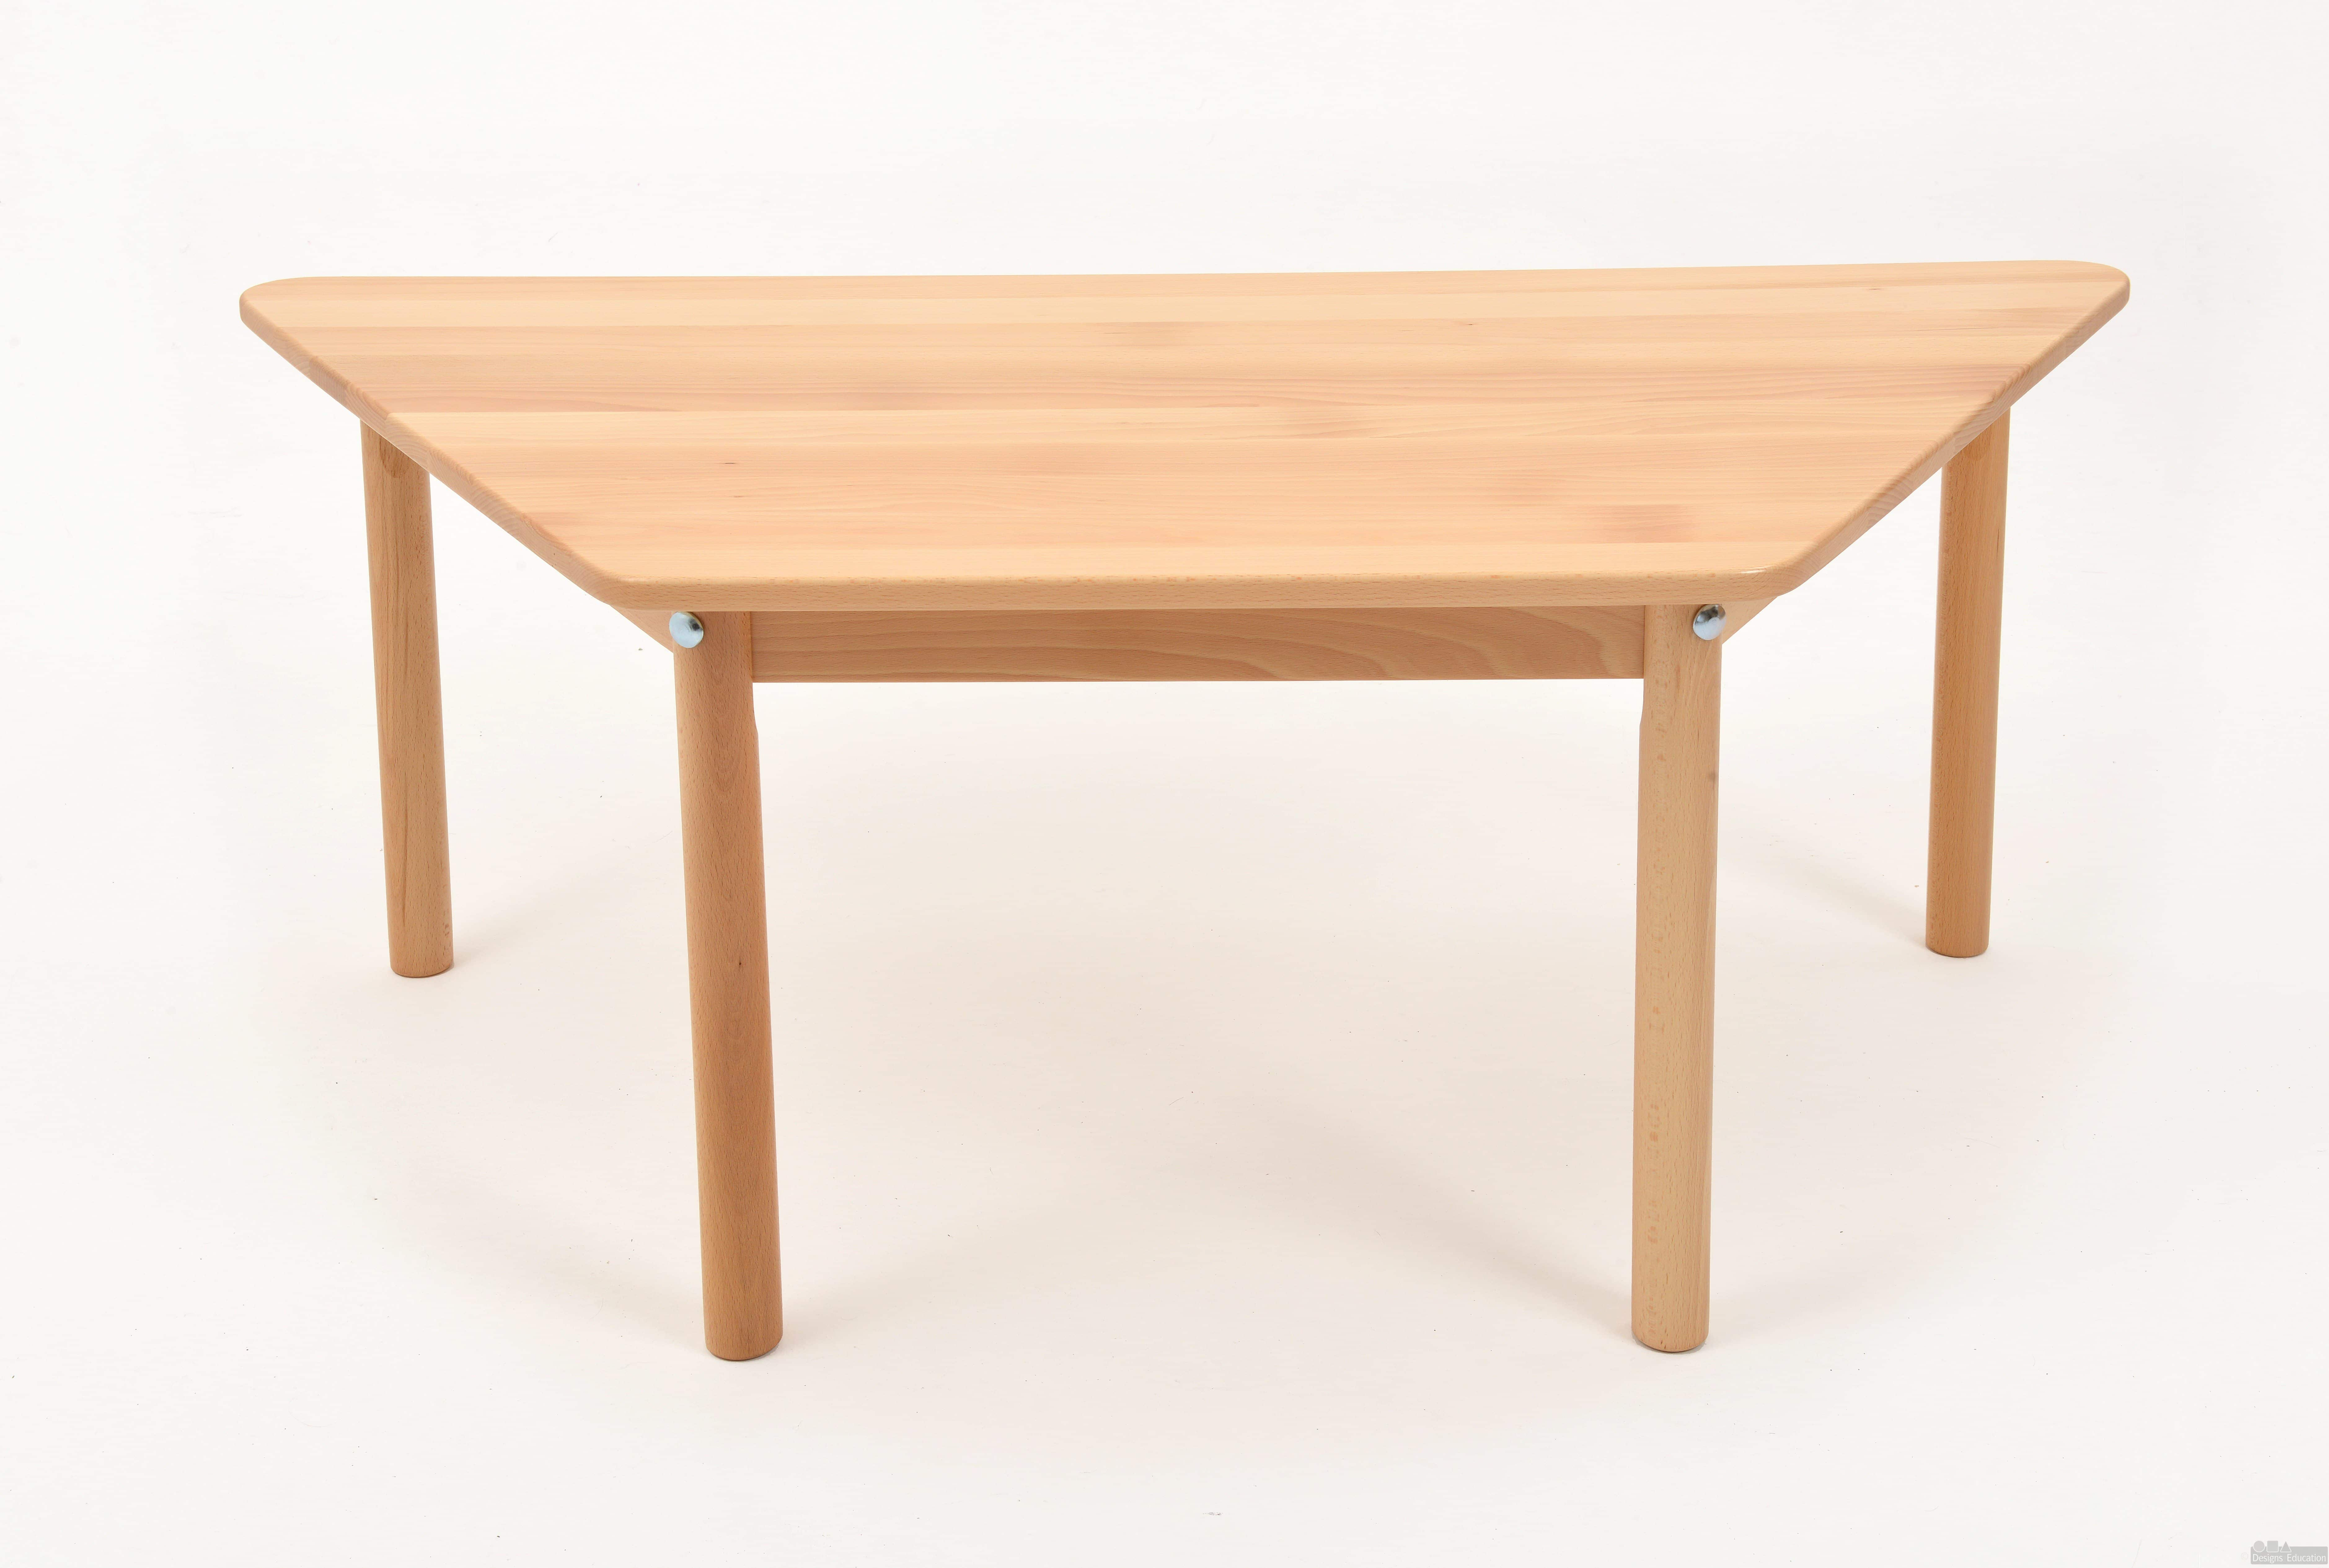 Trapezoidal rectangular table offer designs for education for Trapezoid table